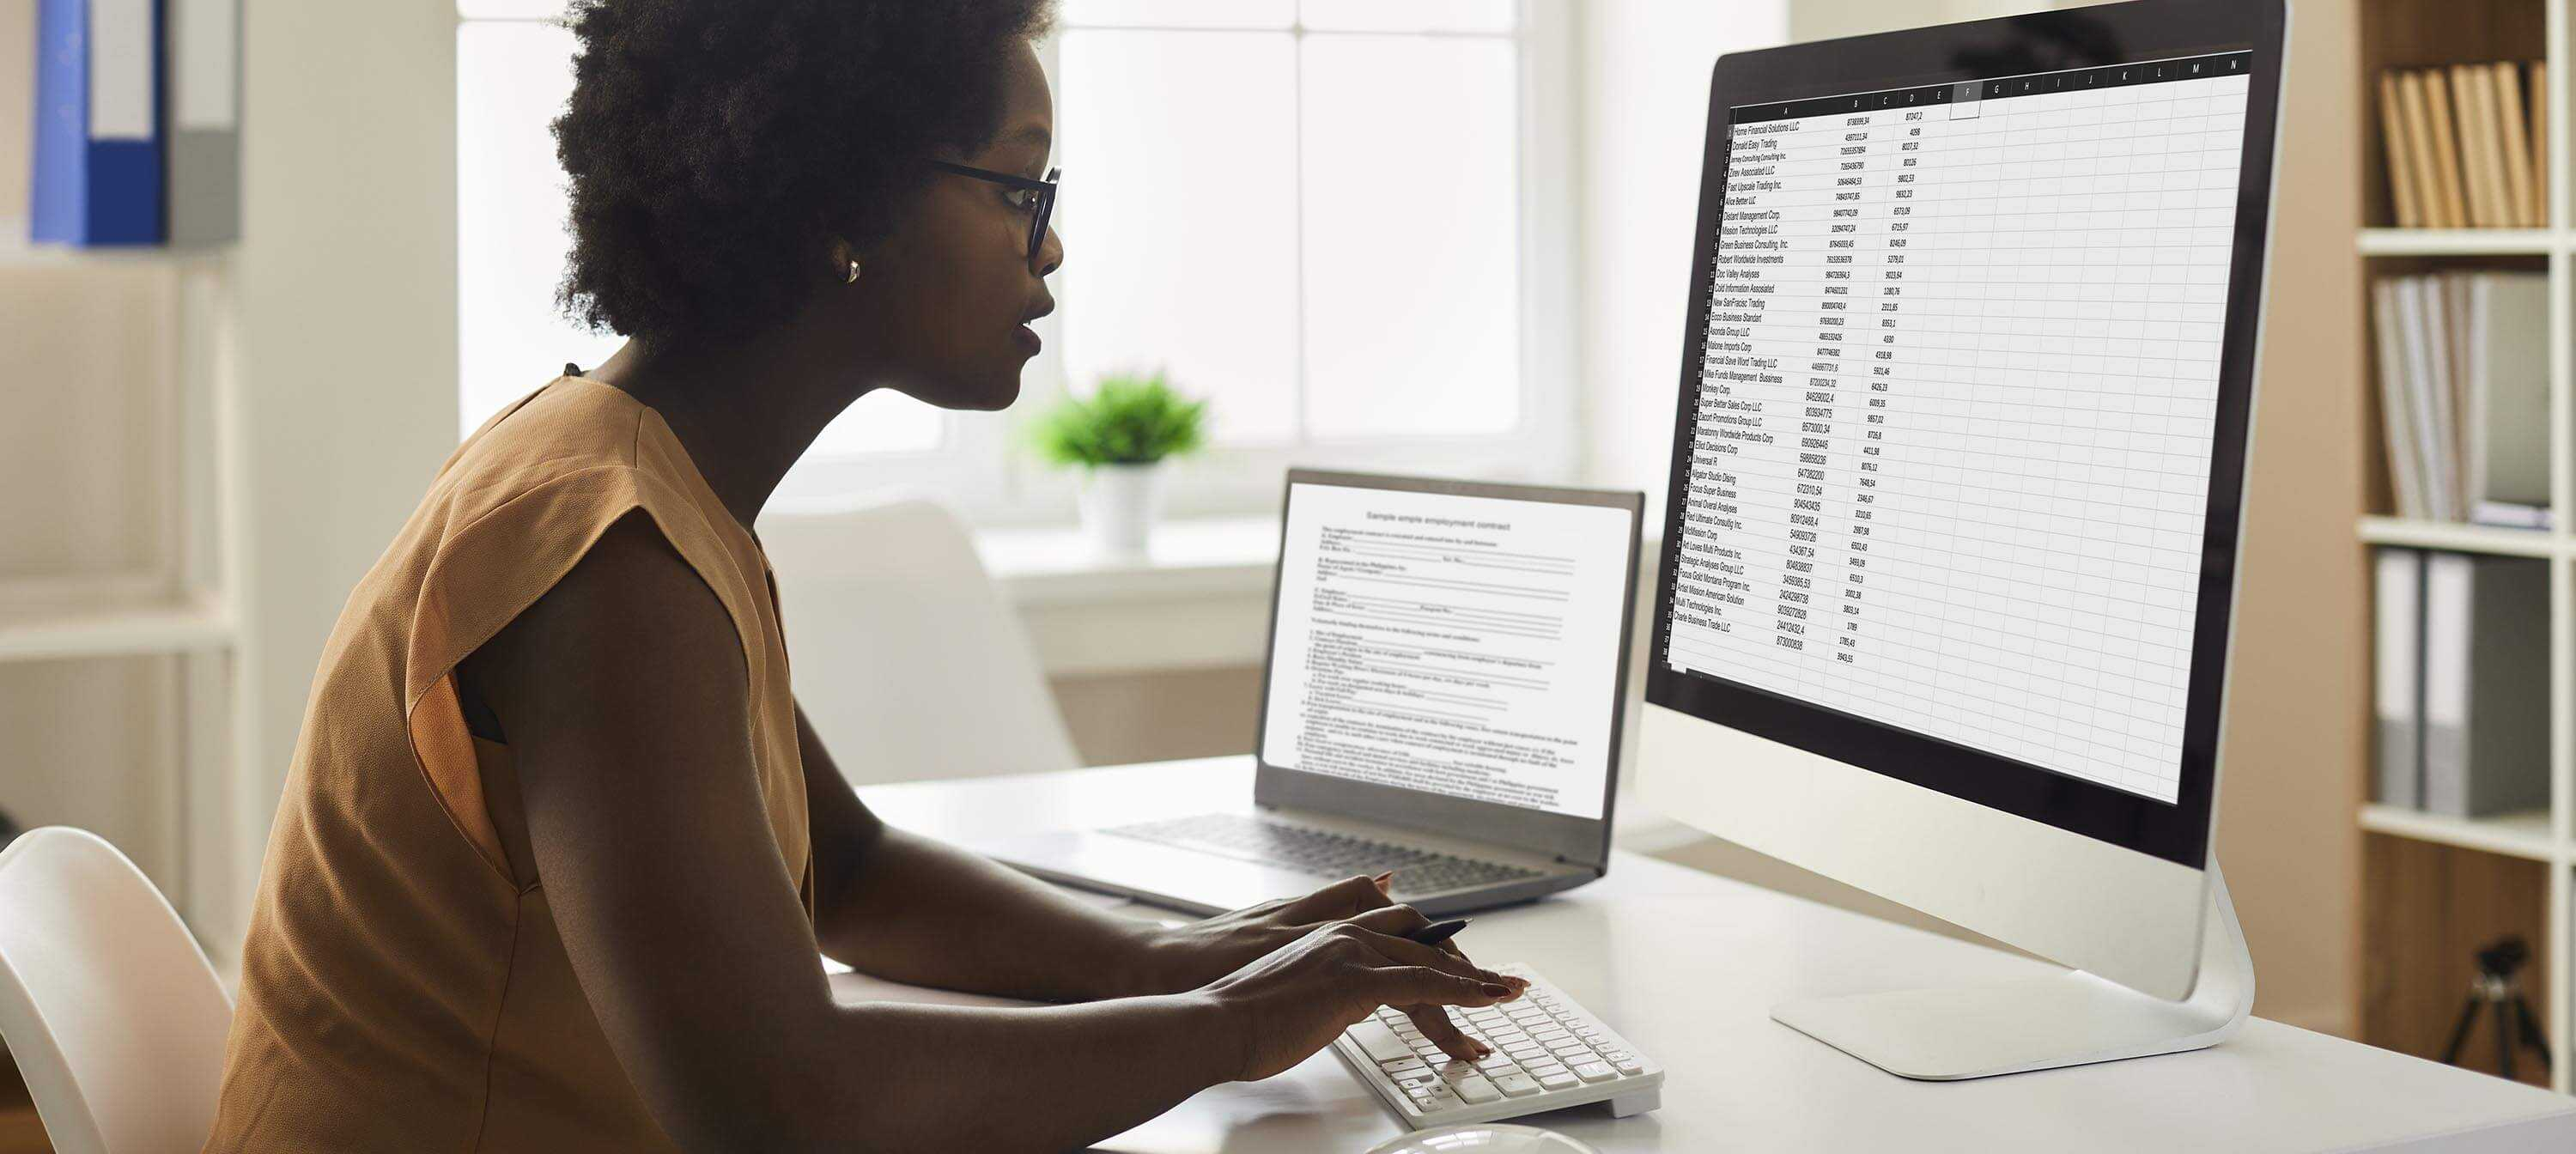 A photo of a woman looking intently at a spreadsheet of data on a large computer screen. She has a laptop open as well on a sleek white desk. In the background, which is slightly blurred, you can see uncluttered, neatly arranged files on shelves, suggesting an office environment. There's a small green plant, in a white pot on the window sill. You can't see out of the window.